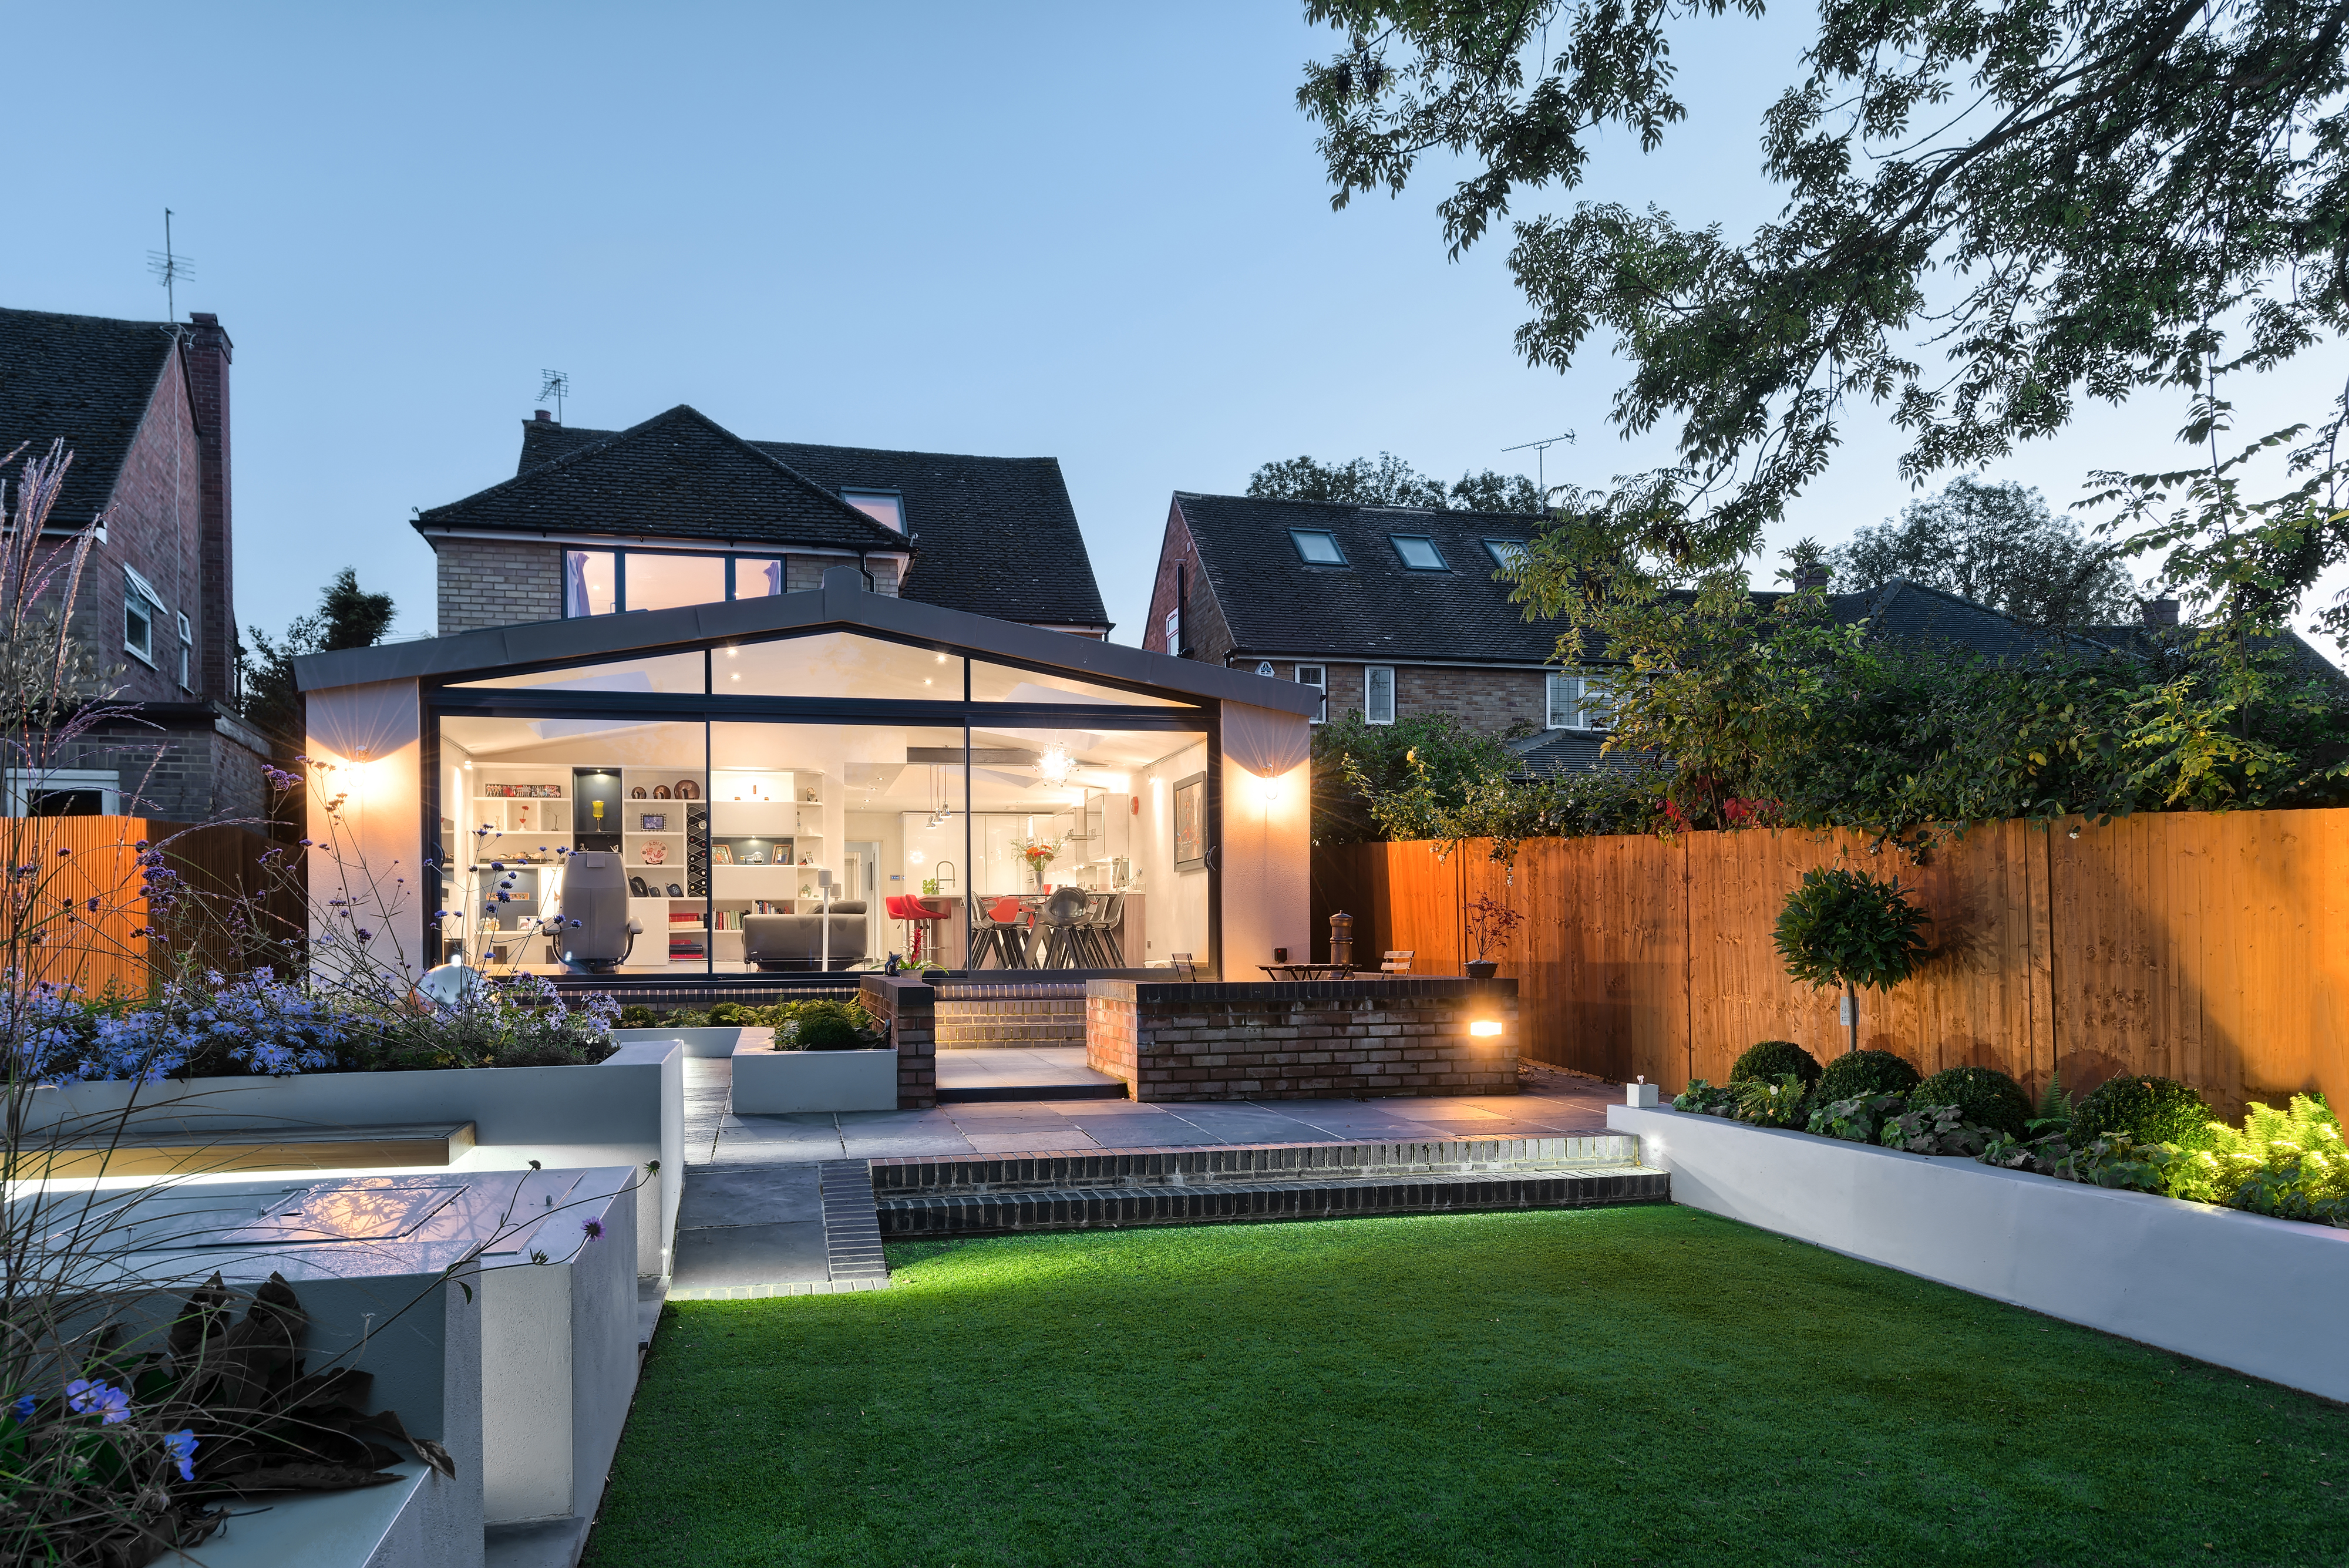 Plan The Kitchen Extension Of Your Dreams With Our Expert Guide Real Homes